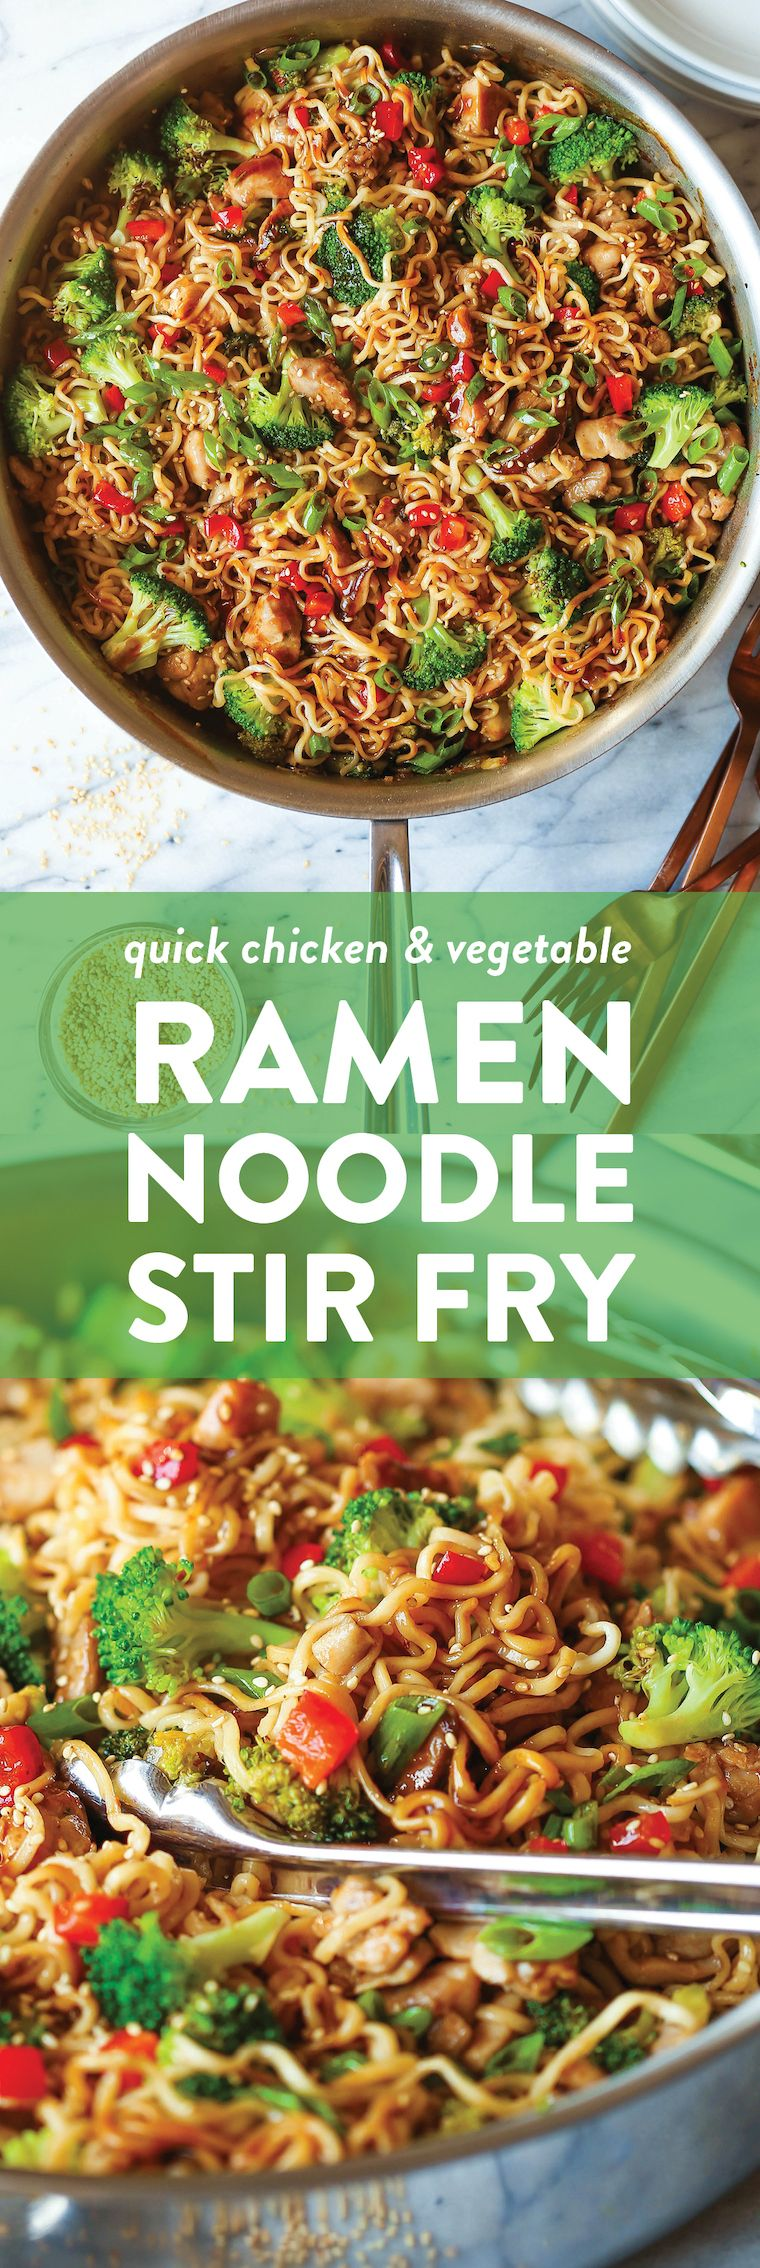 Quick Chicken Ramen Noodle Recipe | Damn Delicious